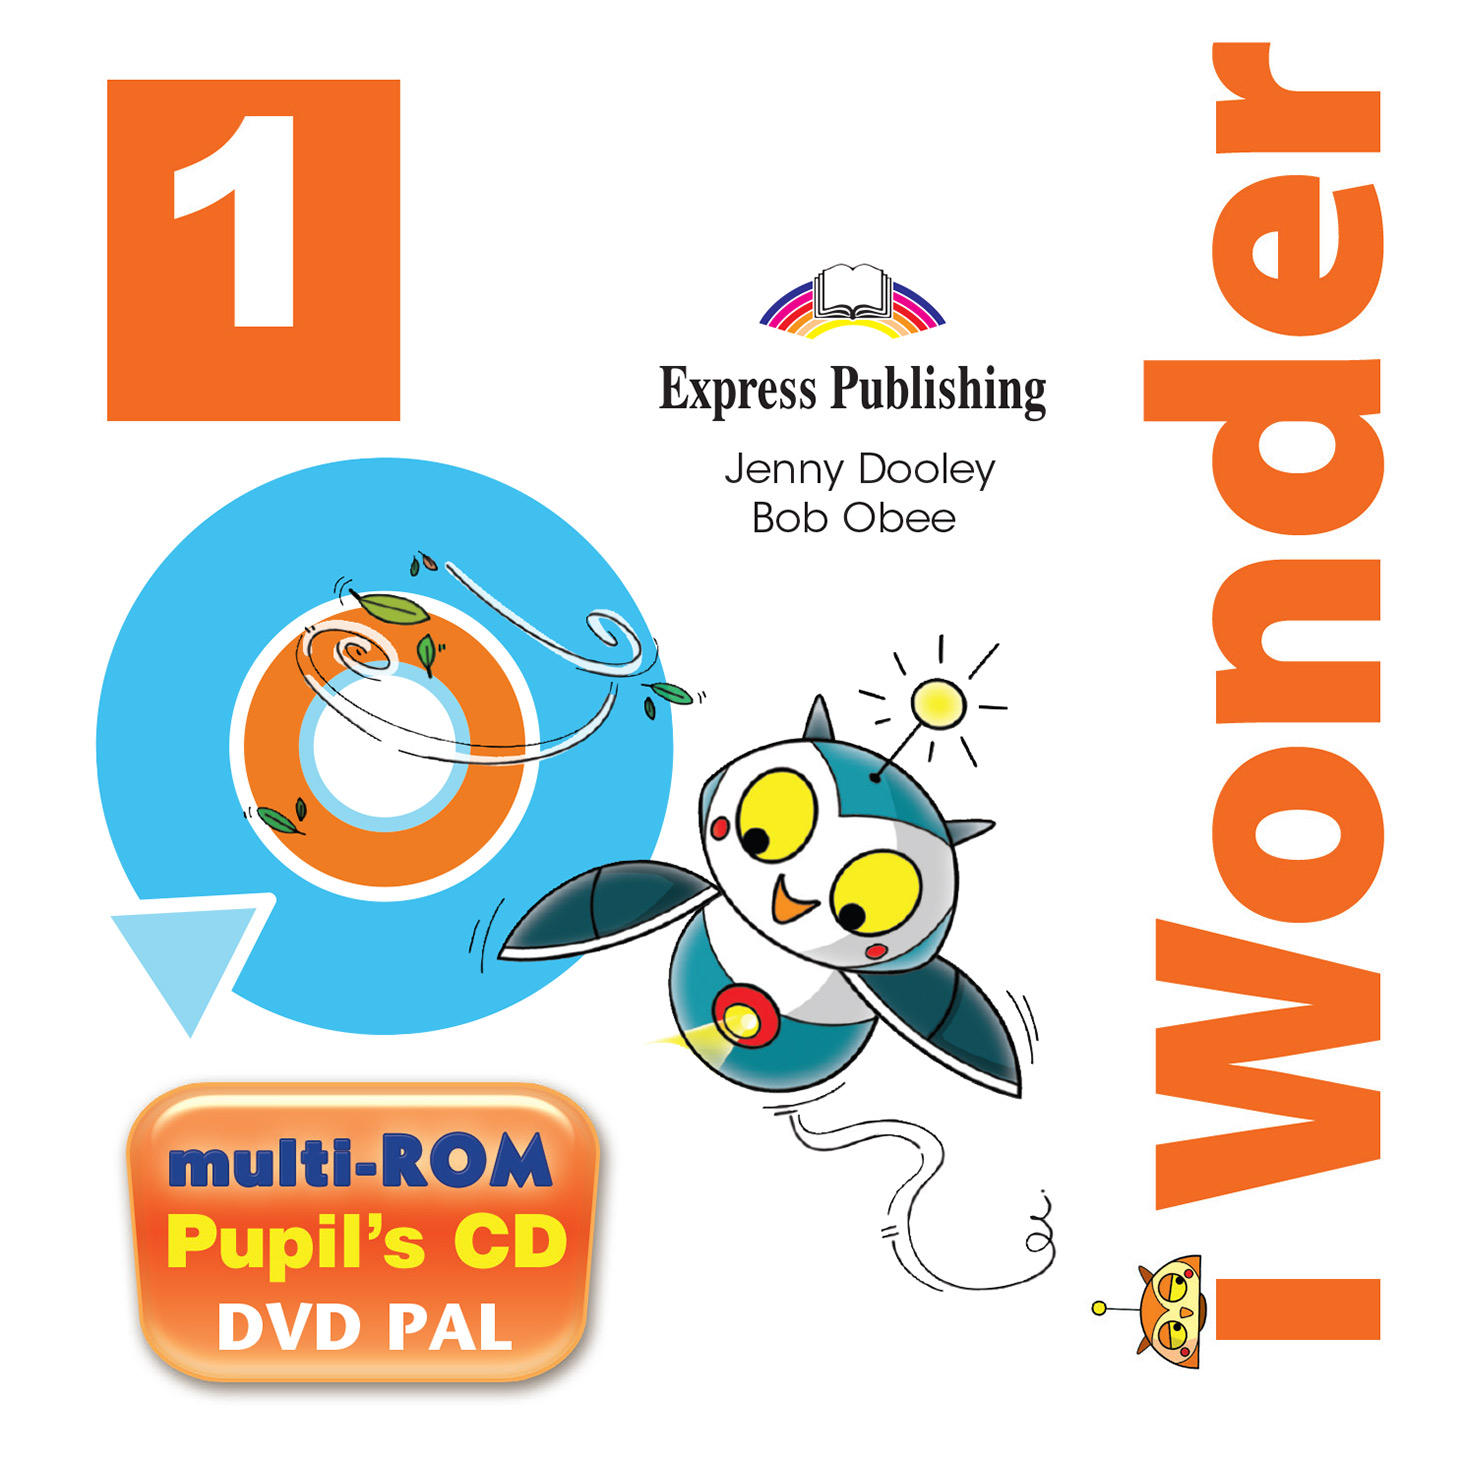 iWonder 1 - multi-ROM (Pupil's Audio CD / DVD Video PAL)